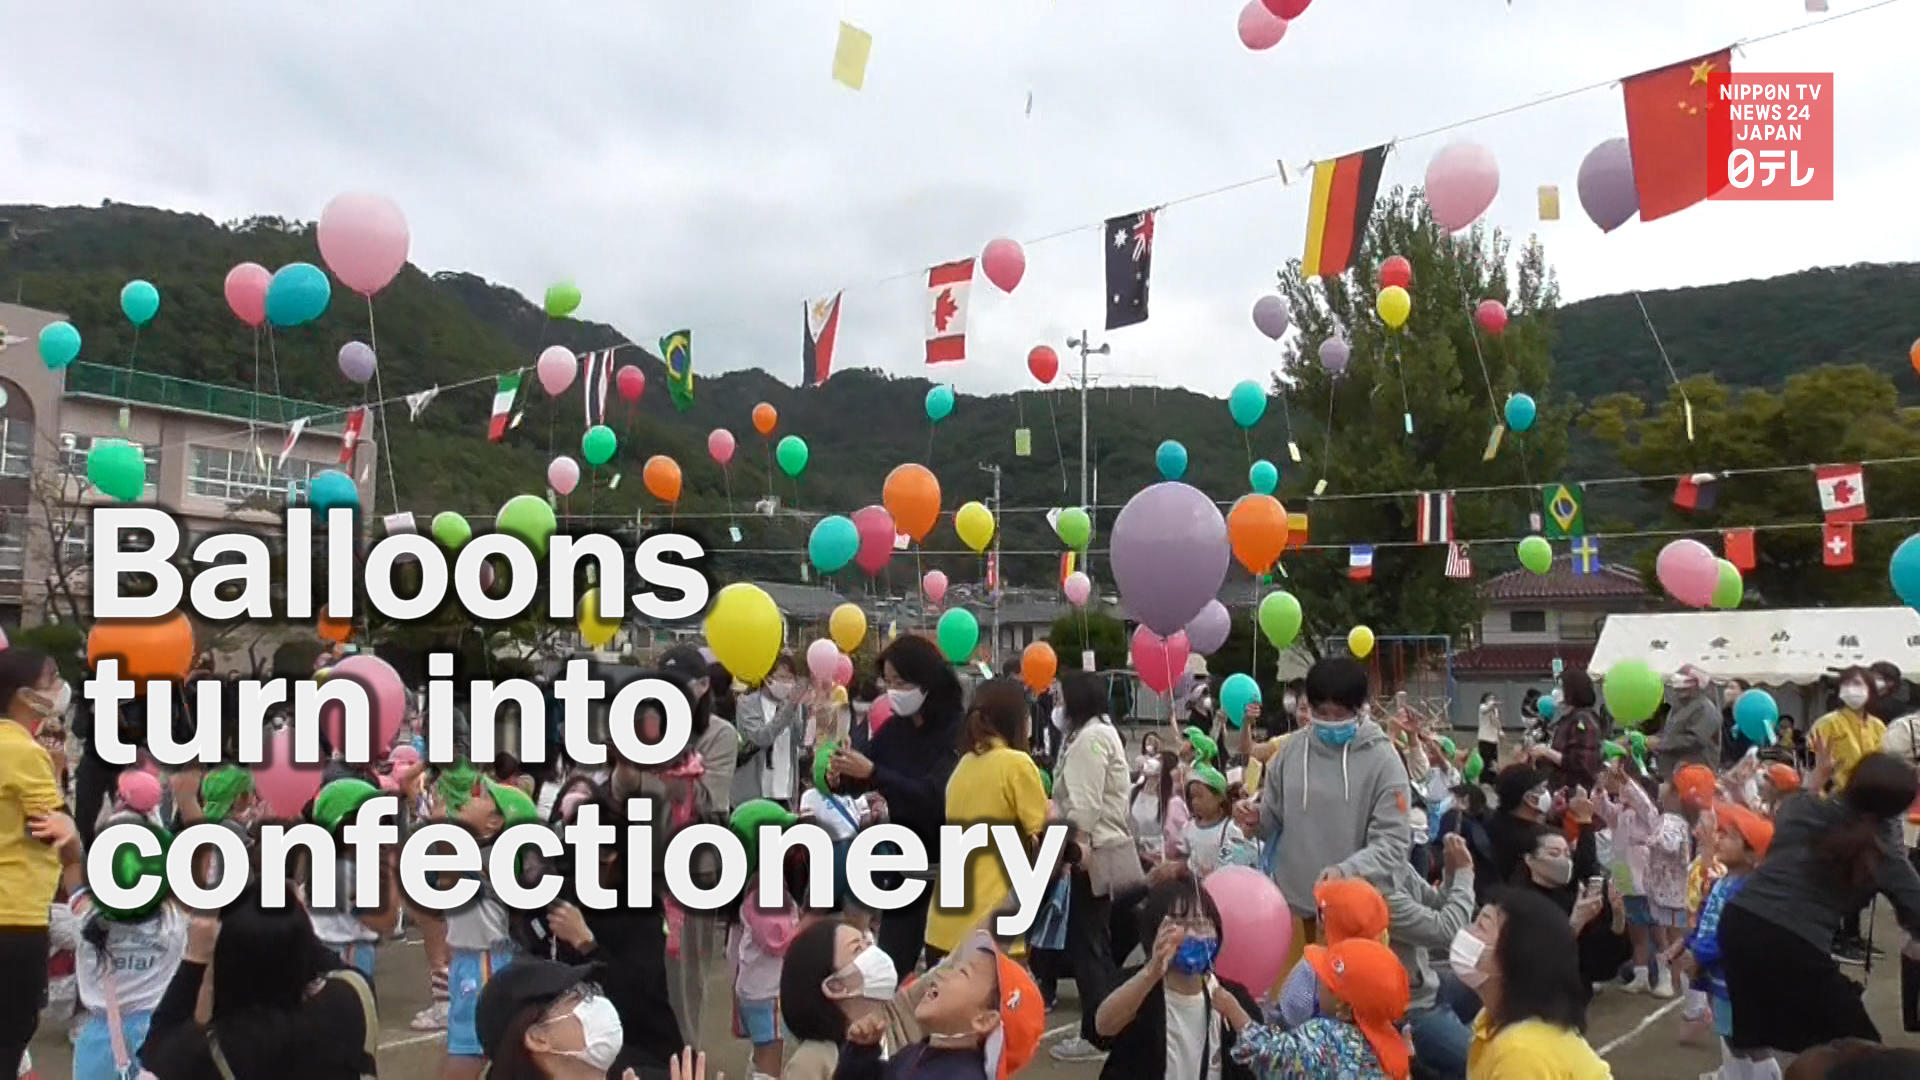 Kindergarten kids' balloons turn into confectionery